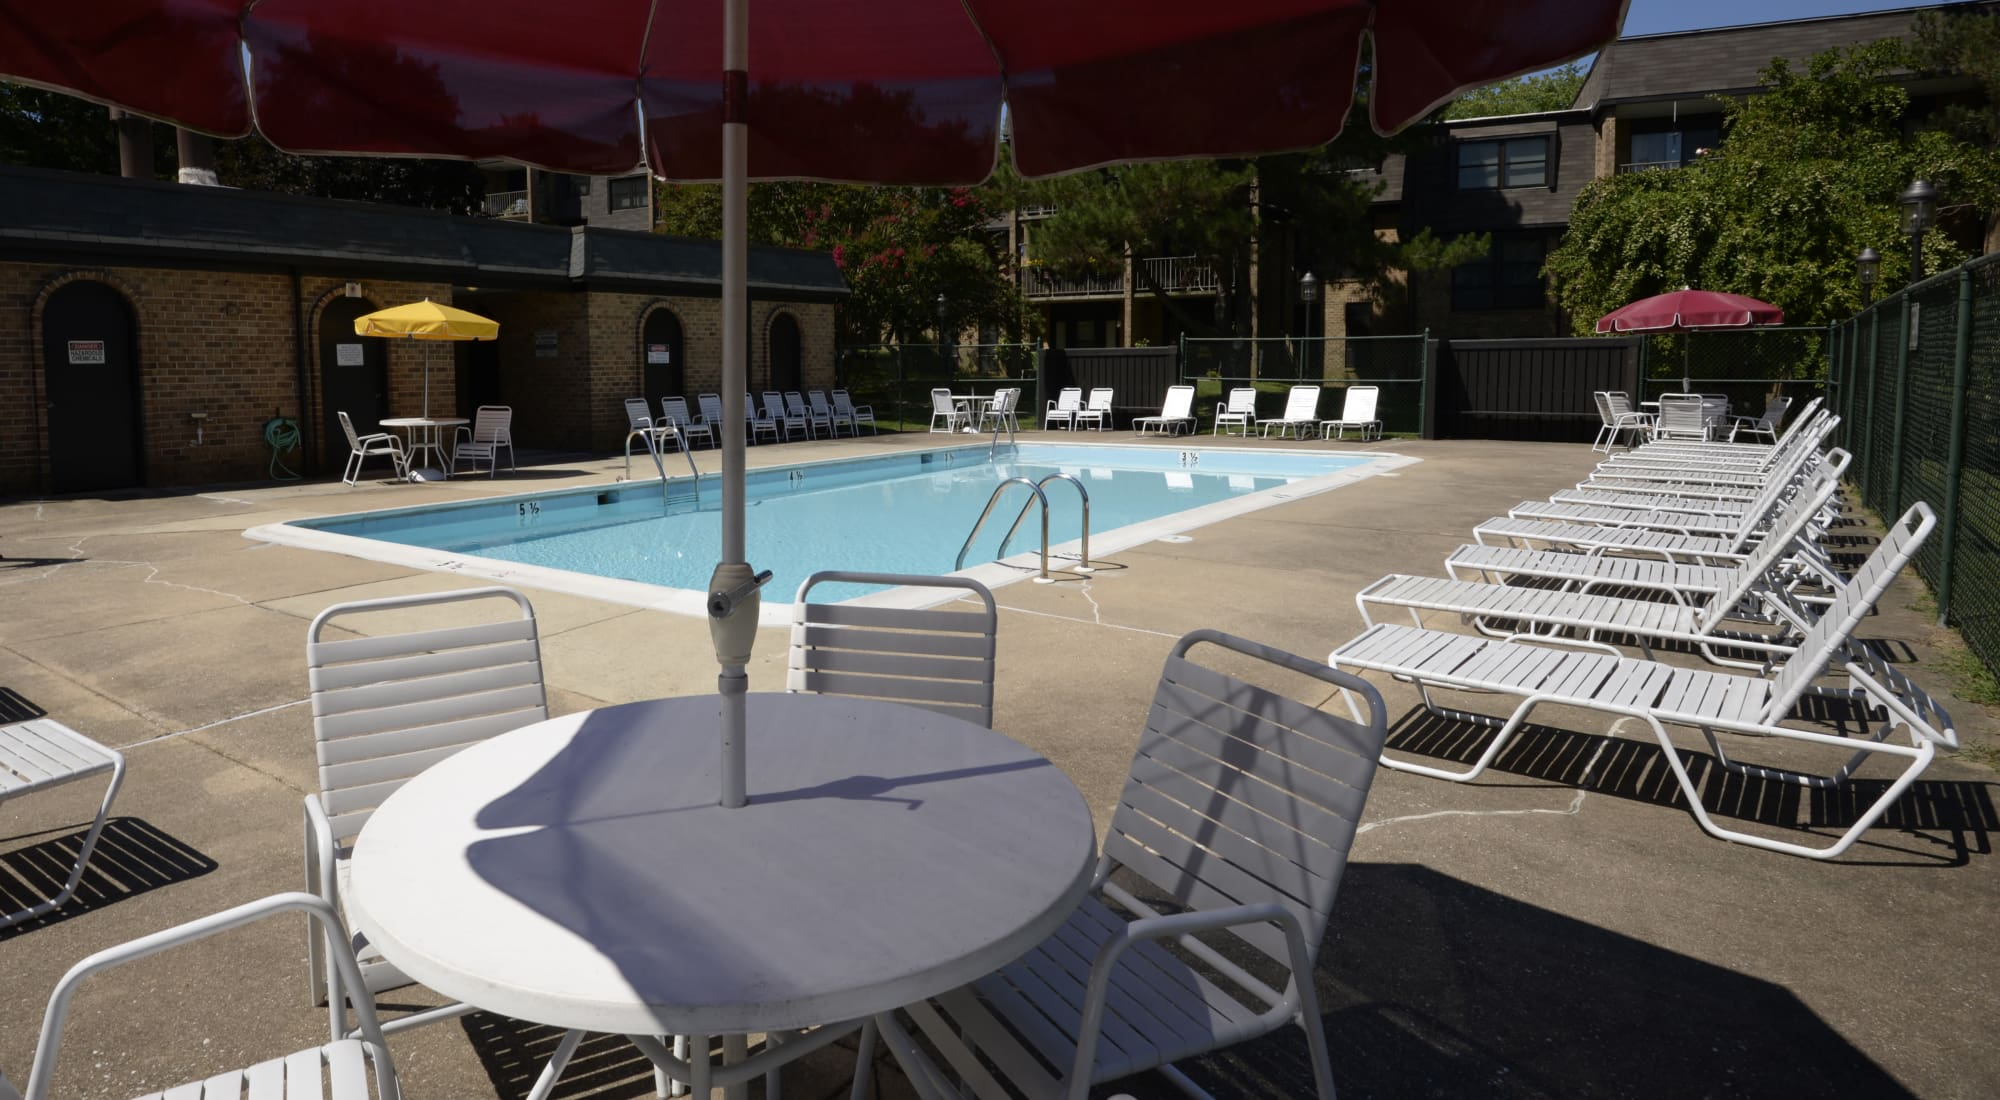 Swimming pools with chairs and a table at Charlesgate Apartments in Towson, Maryland